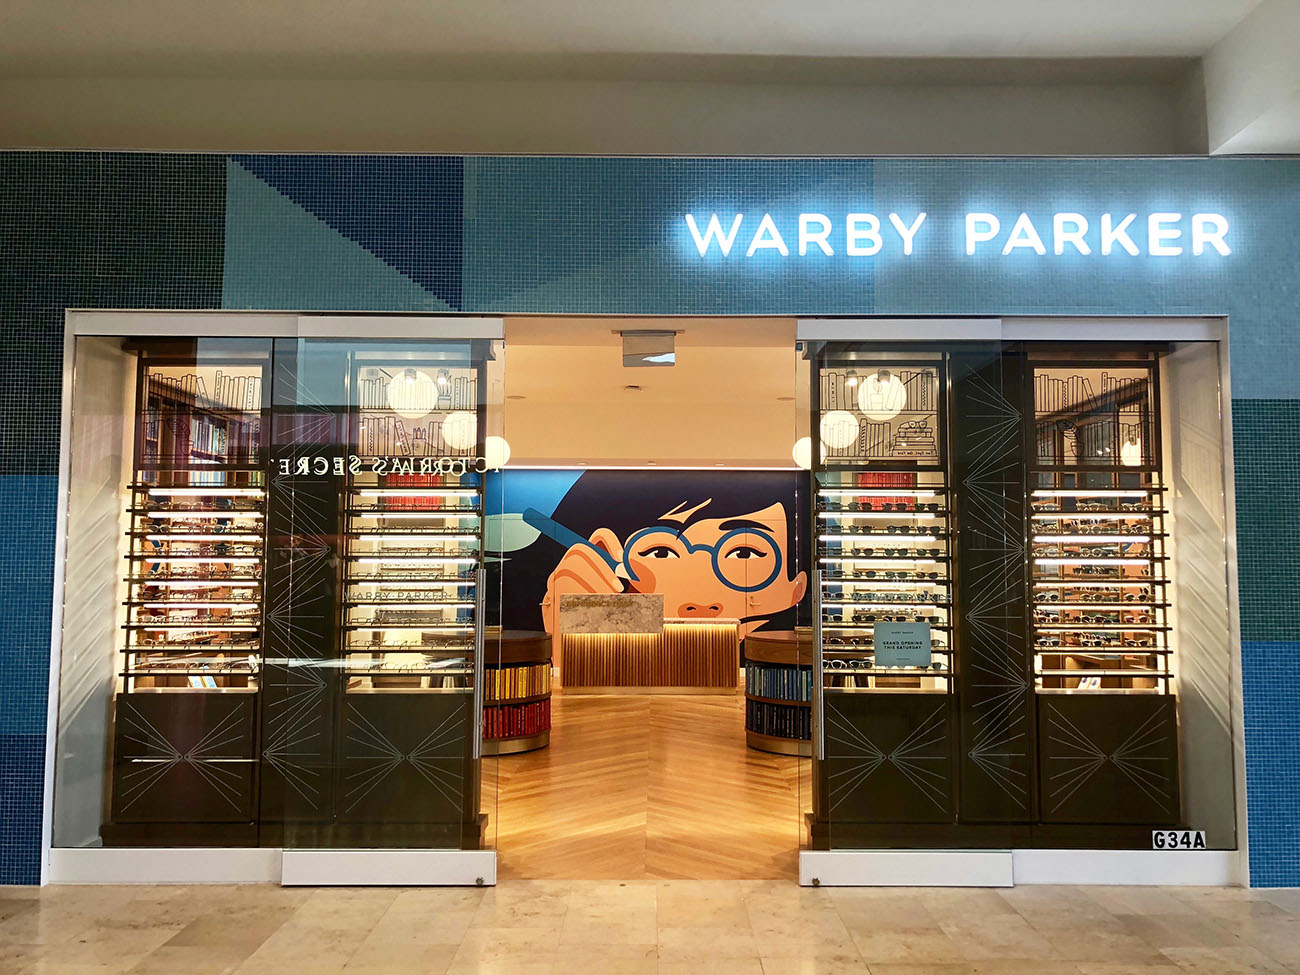 See inside: Warby Parker opening in SouthPark mall on Saturday — they'll have free Jeni's to celebrate